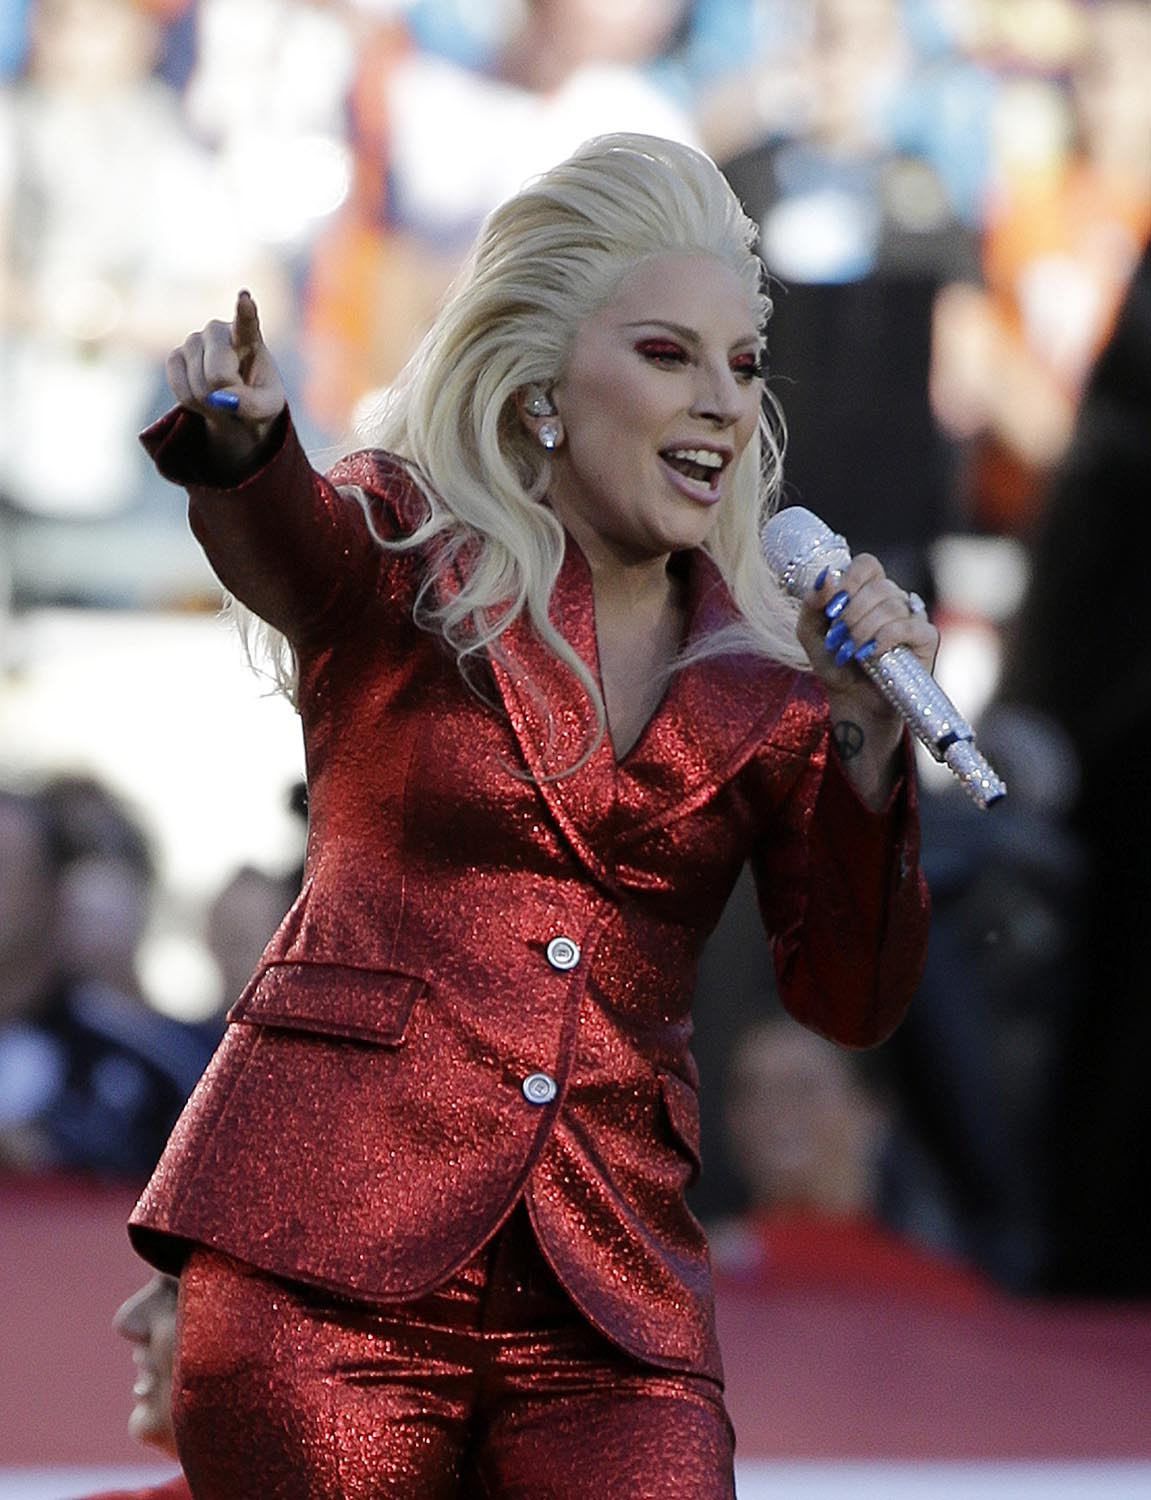 <div class='meta'><div class='origin-logo' data-origin='AP'></div><span class='caption-text' data-credit='AP Photo/Gregory Bull'>2016: Lady Gaga sings the national anthem before the NFL Super Bowl 50 football game between the Denver Broncos and the Carolina Panthers Sunday, Feb. 7, 2016.</span></div>